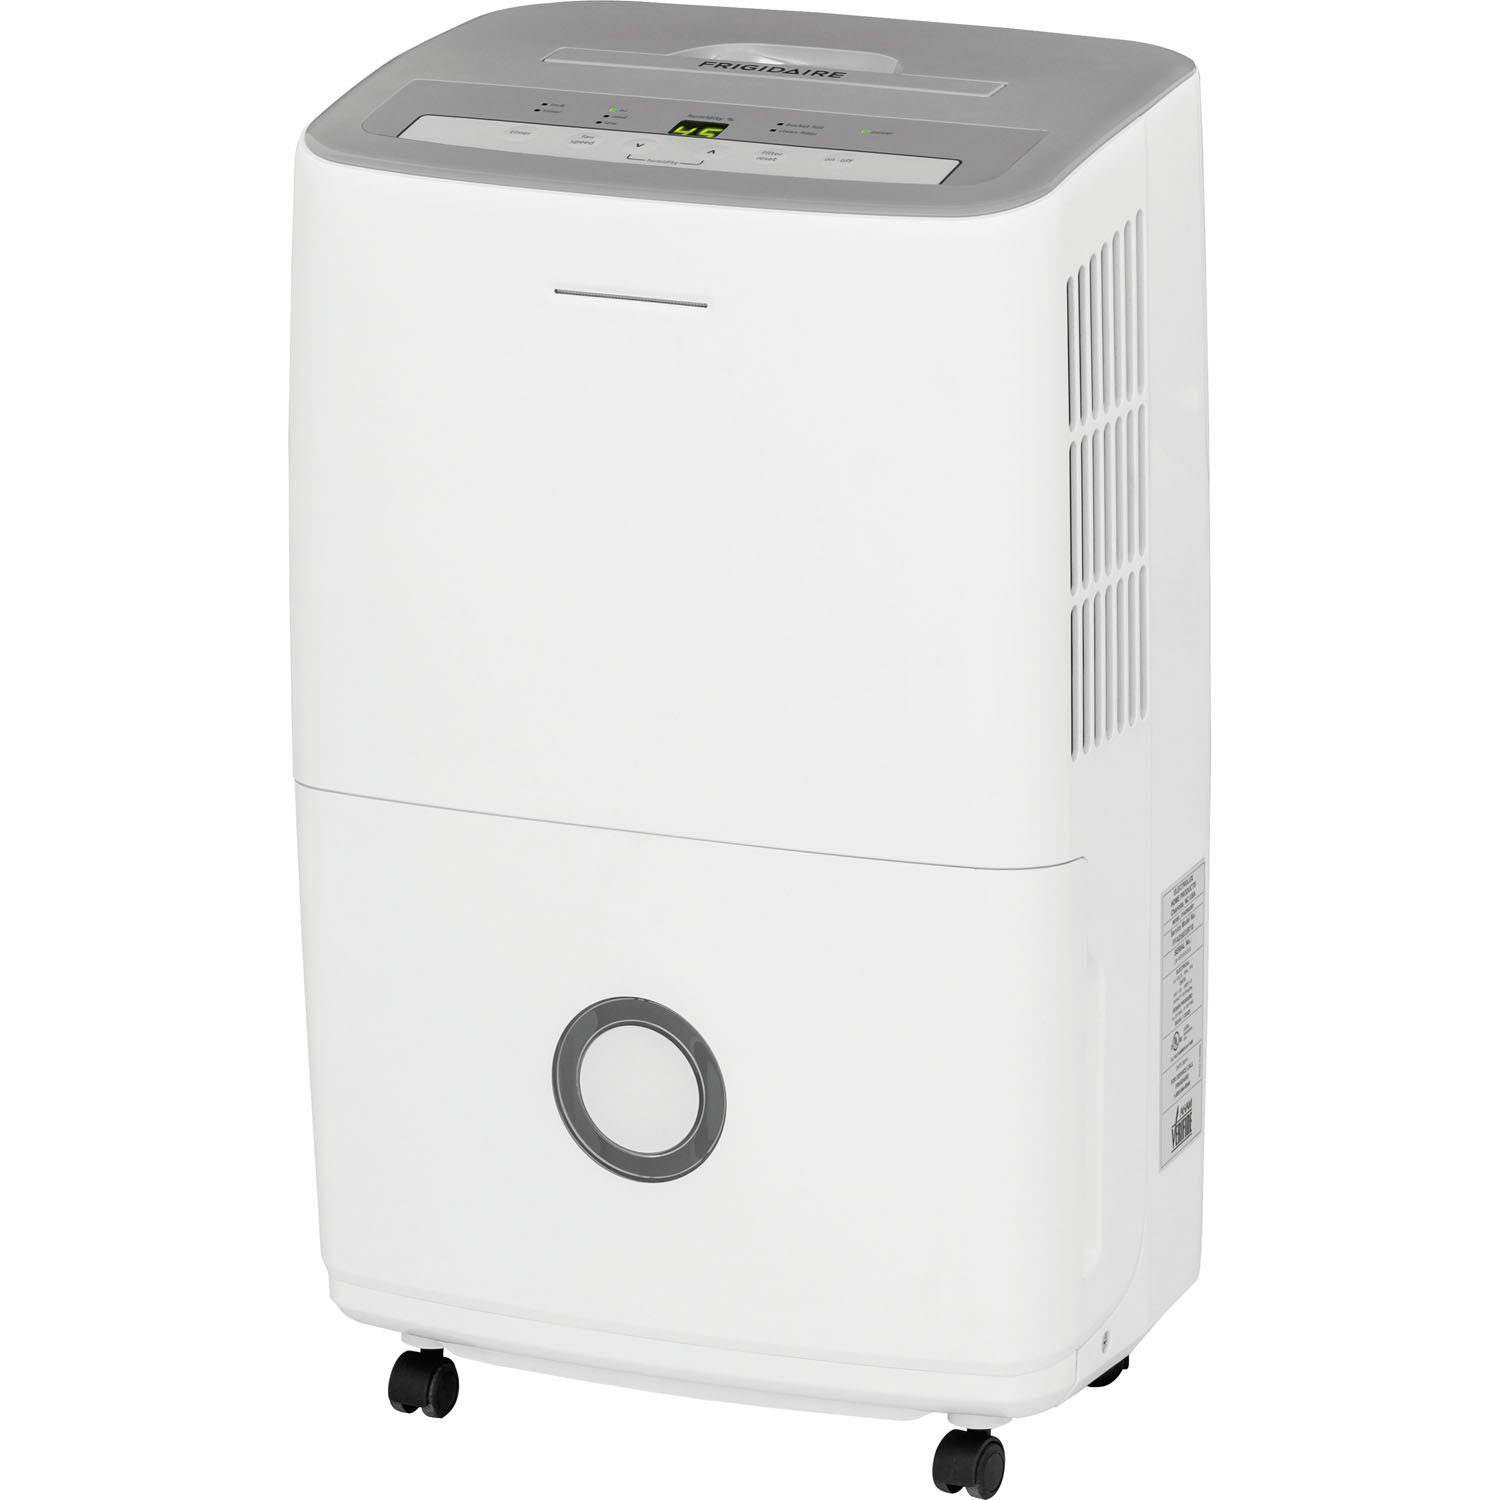 Top 10 Best Rated Dehumidifiers for Basement - Whole House ...